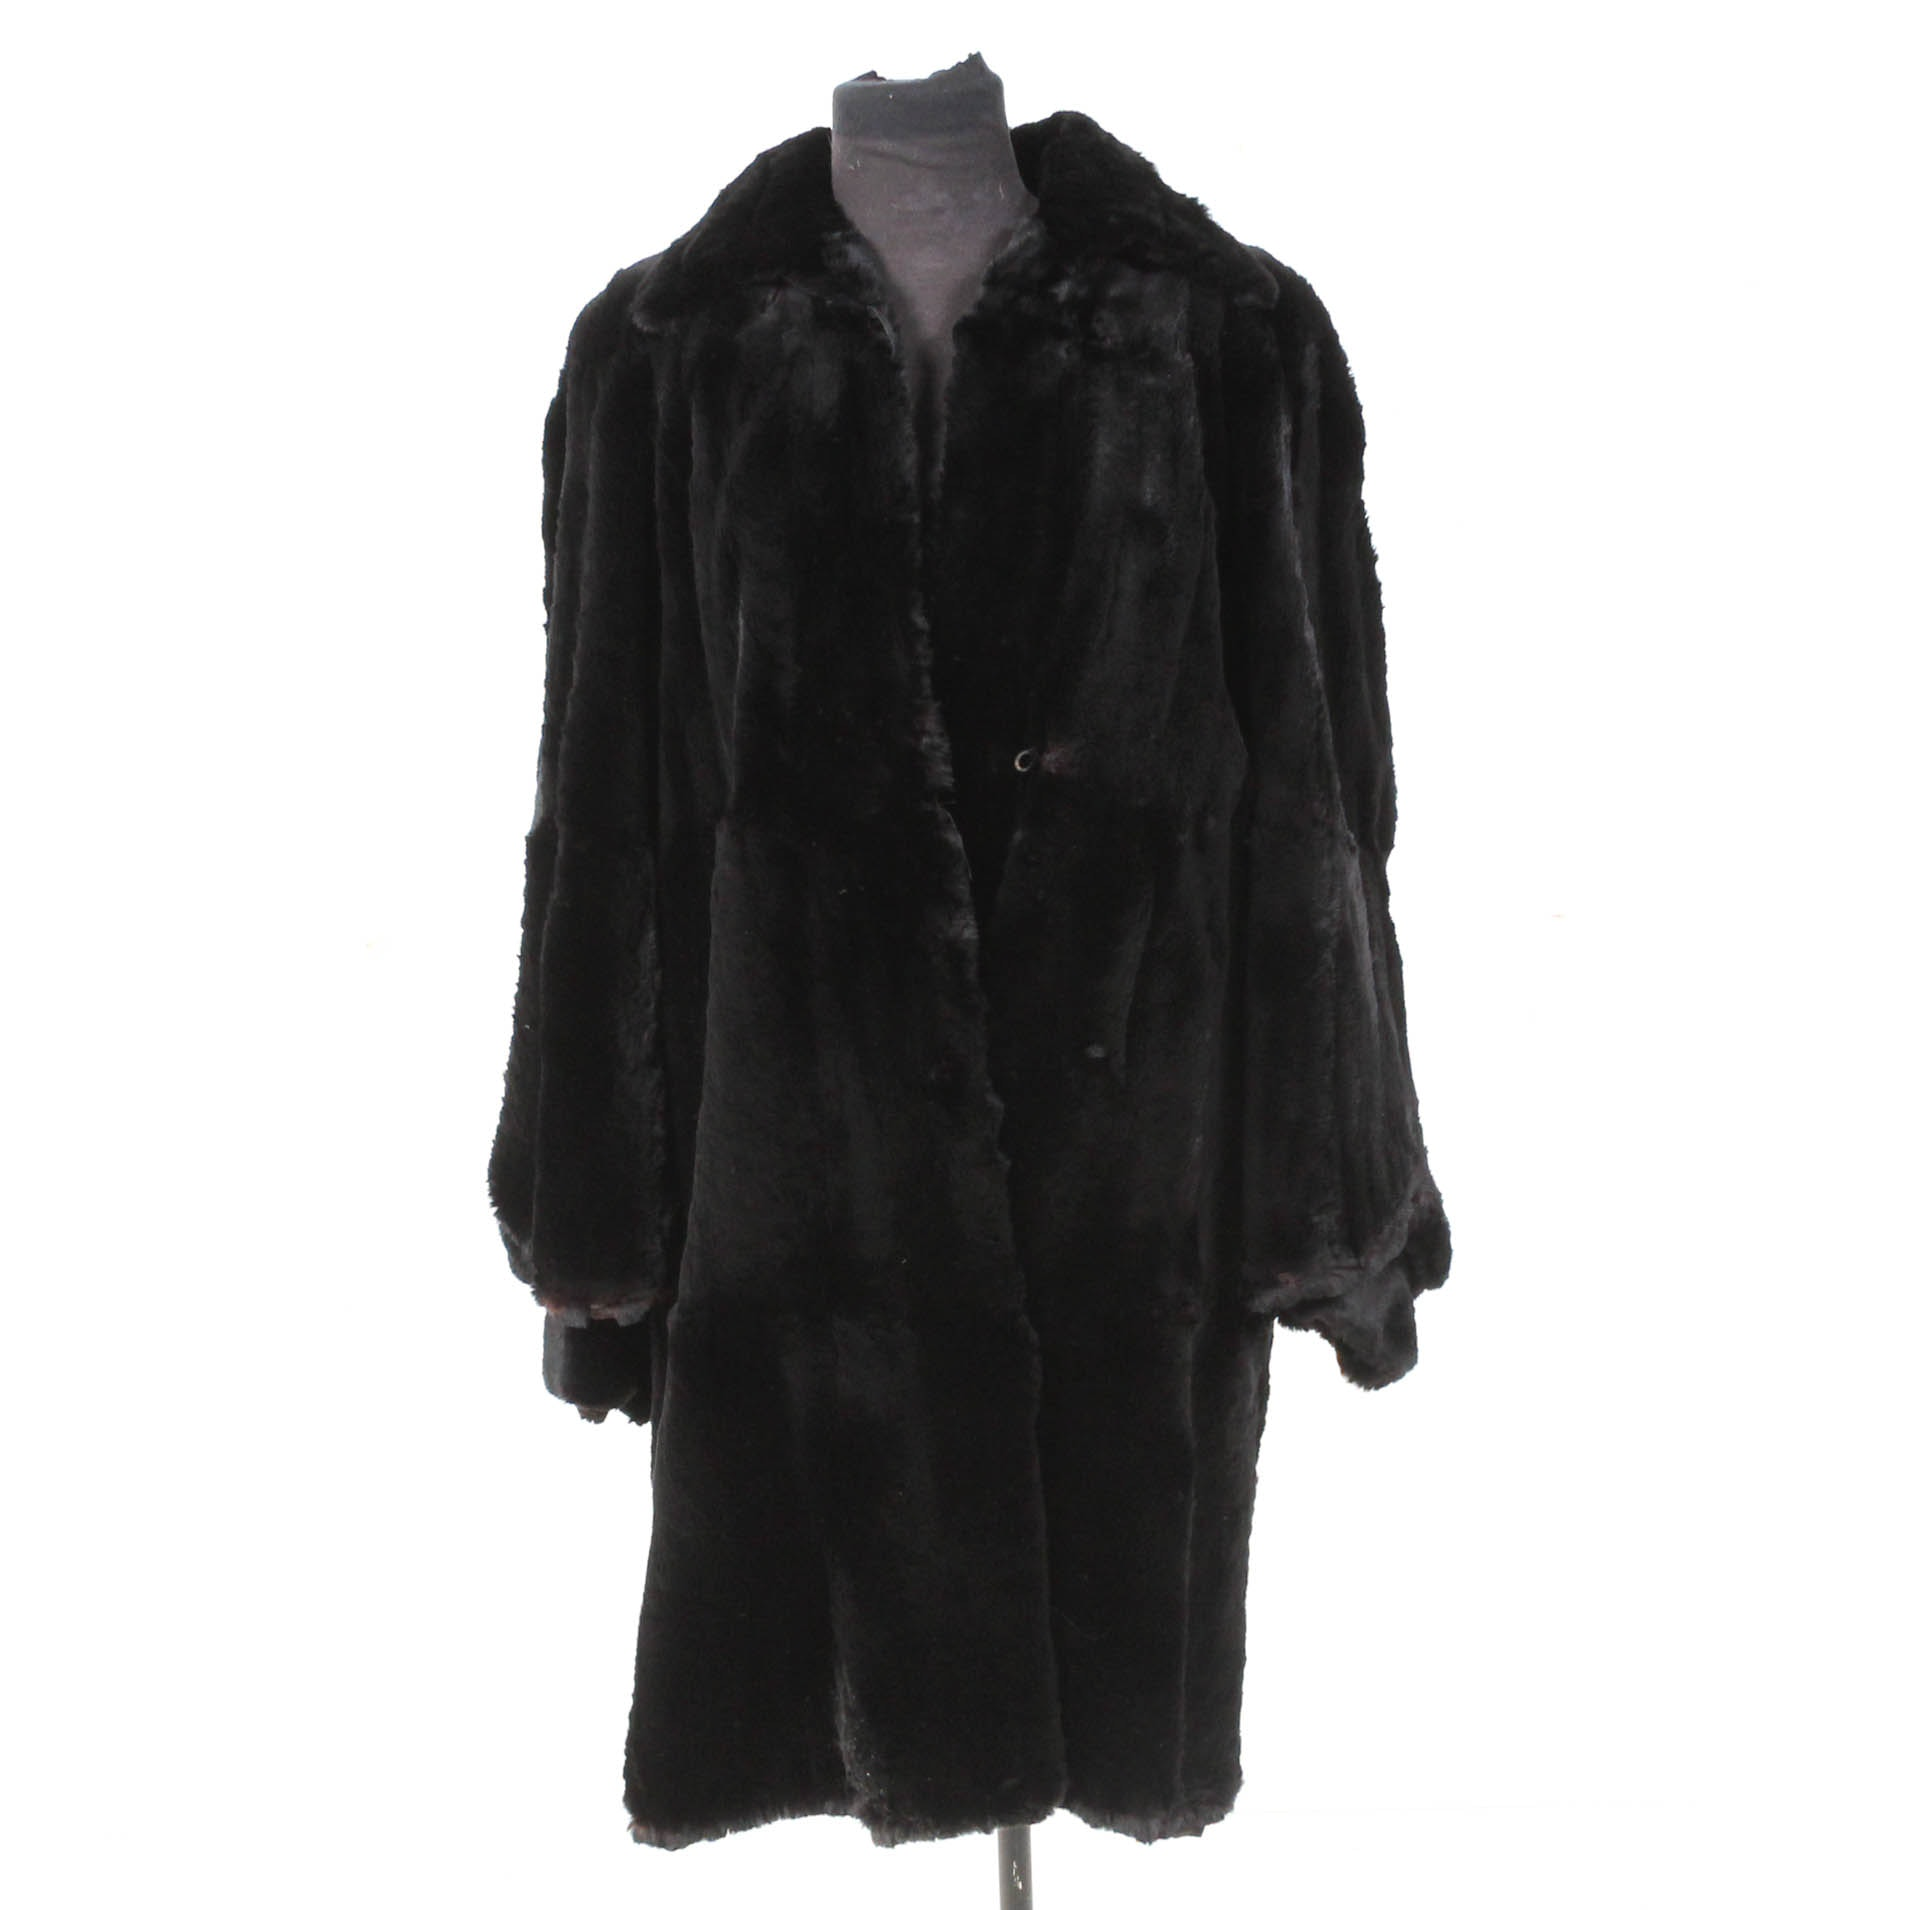 Marilyn Furs Black Rabbit Fur Coat with Flared Sleeves